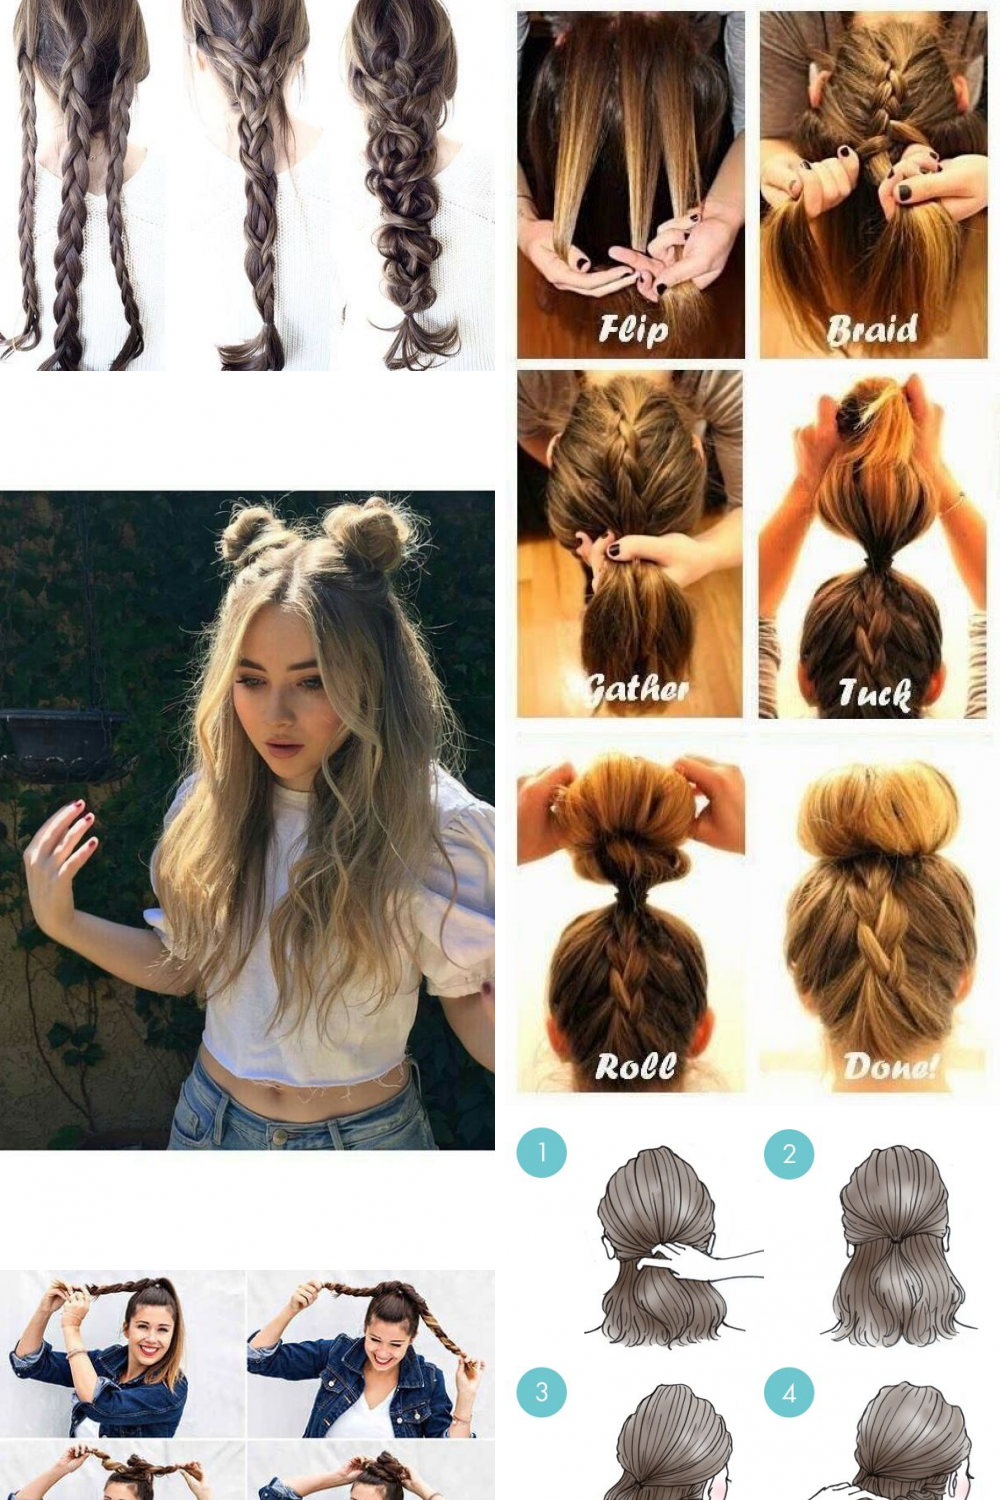 31 Awesome Easy Hairstyles Ideas Hair Styles Fancy Hairstyles Short Hair Tutorial